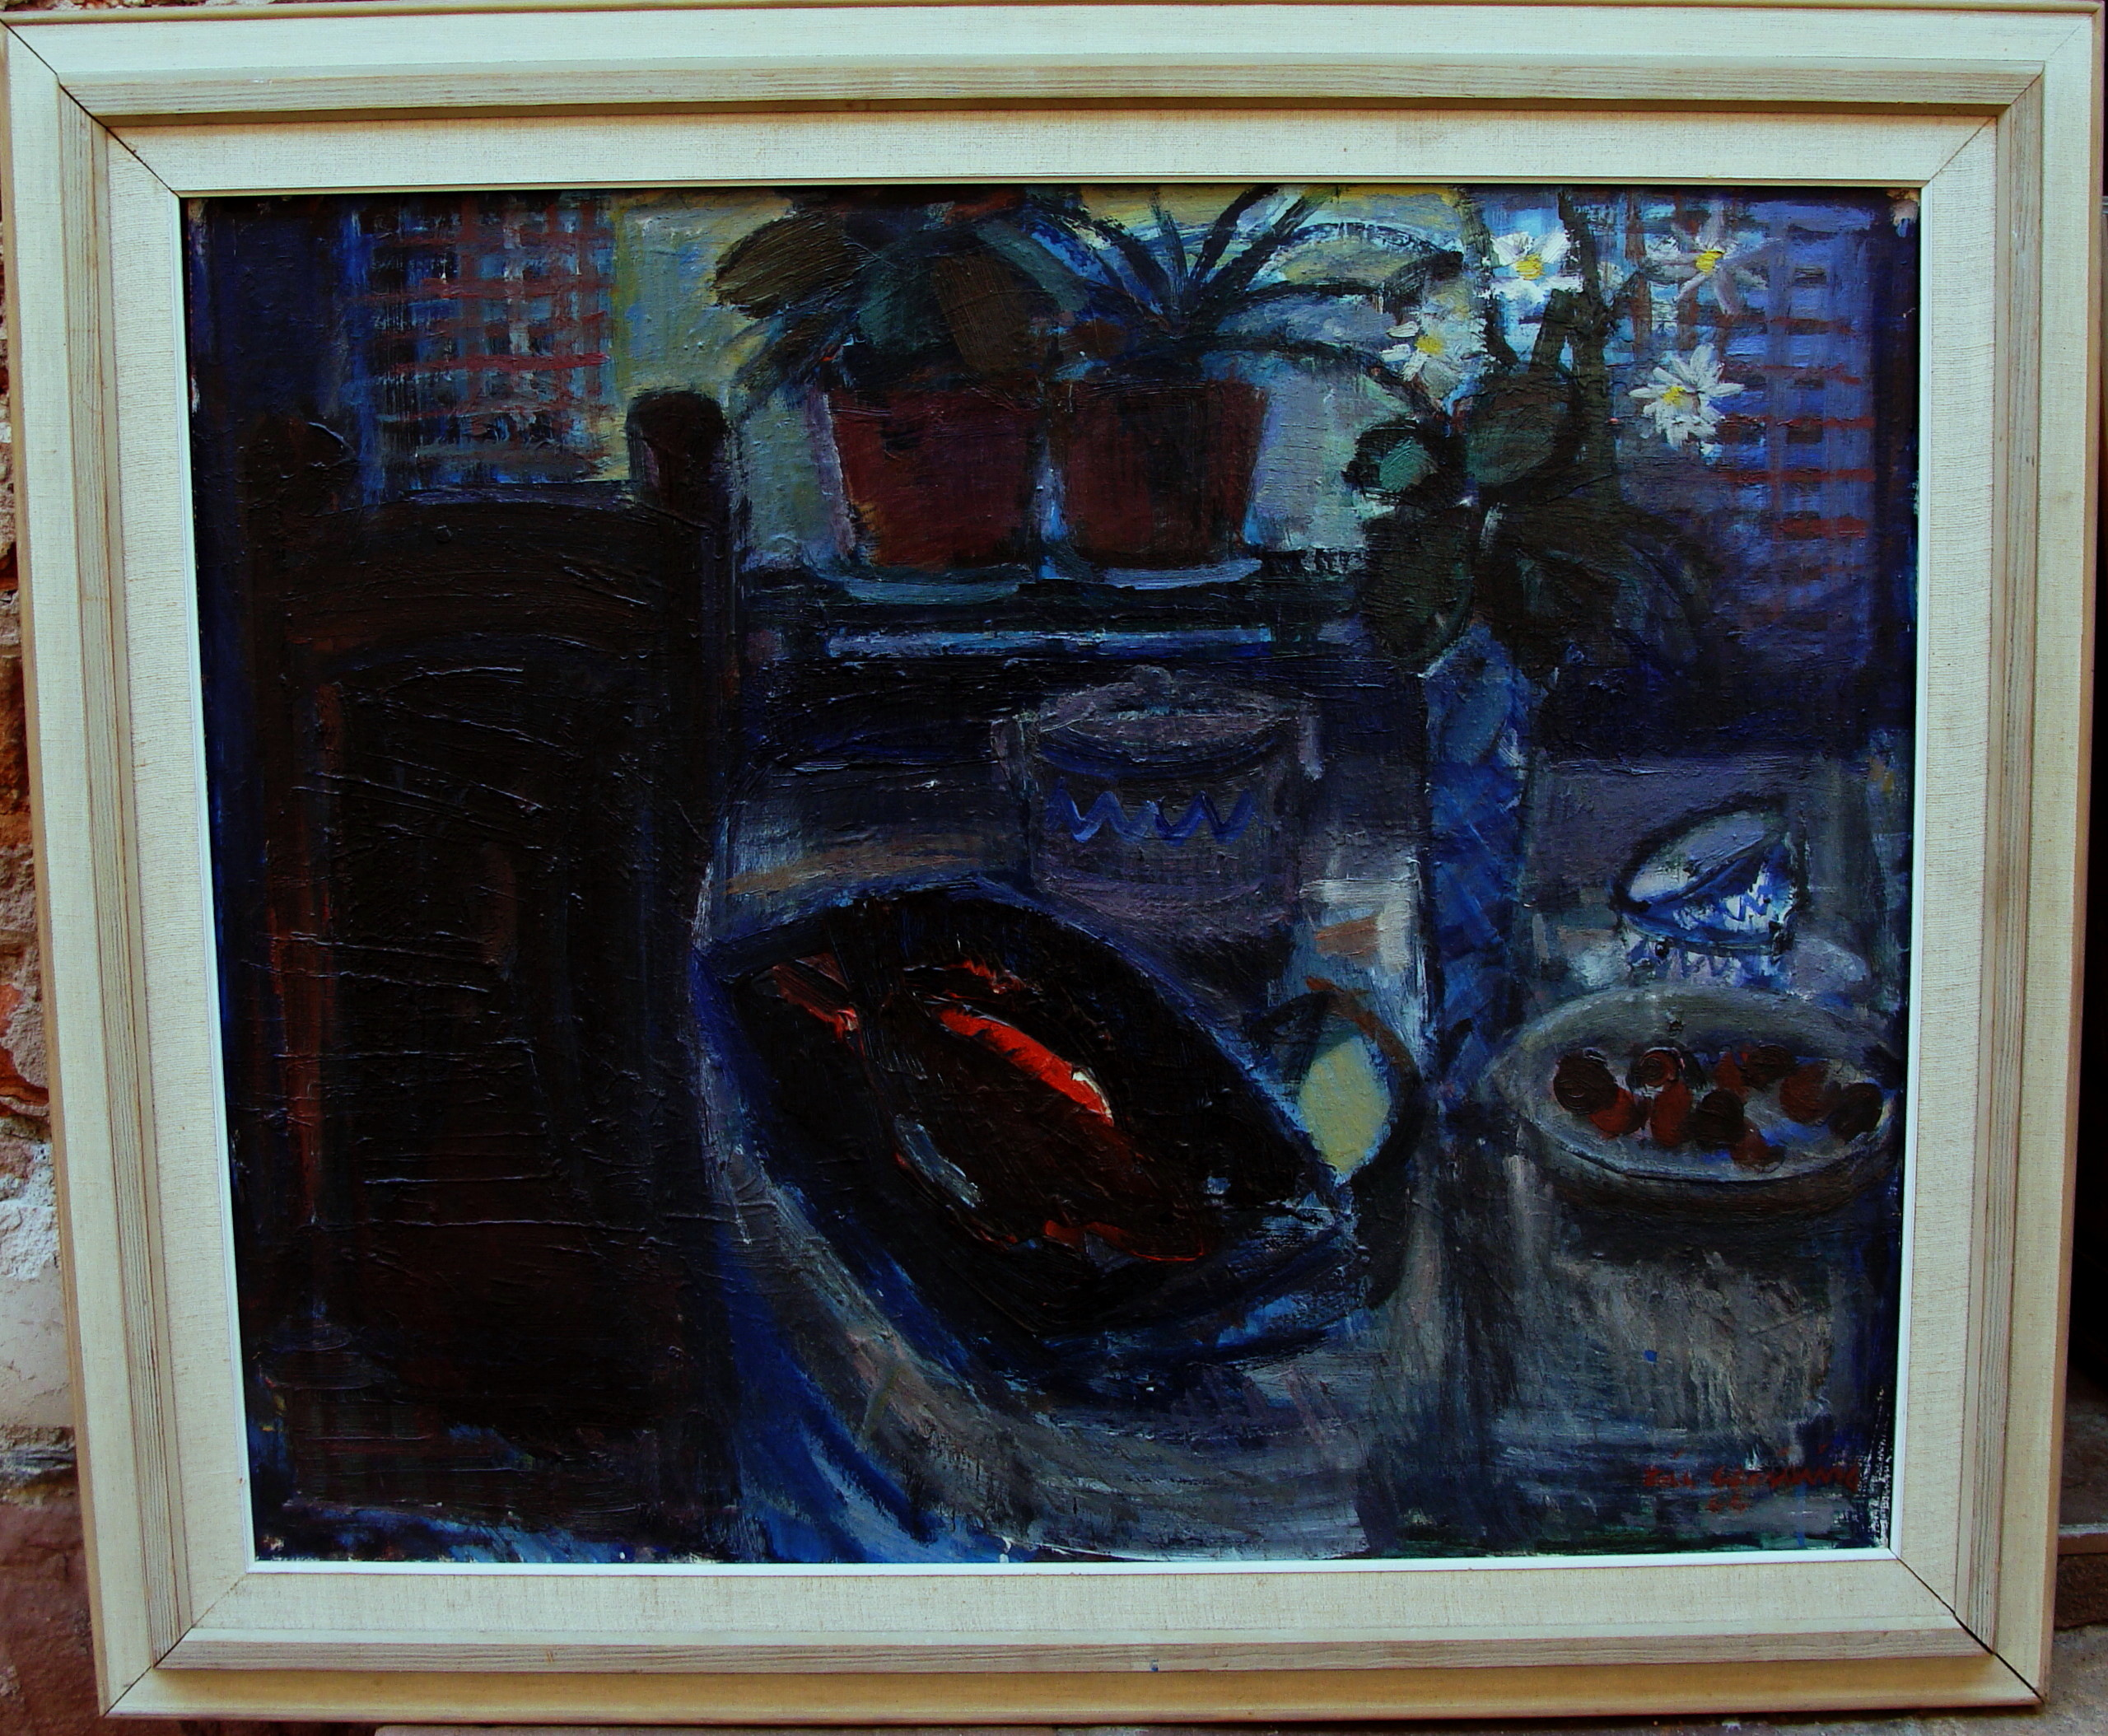 eric westling 1920 still life with fish outside the window dated 1966 ebay. Black Bedroom Furniture Sets. Home Design Ideas